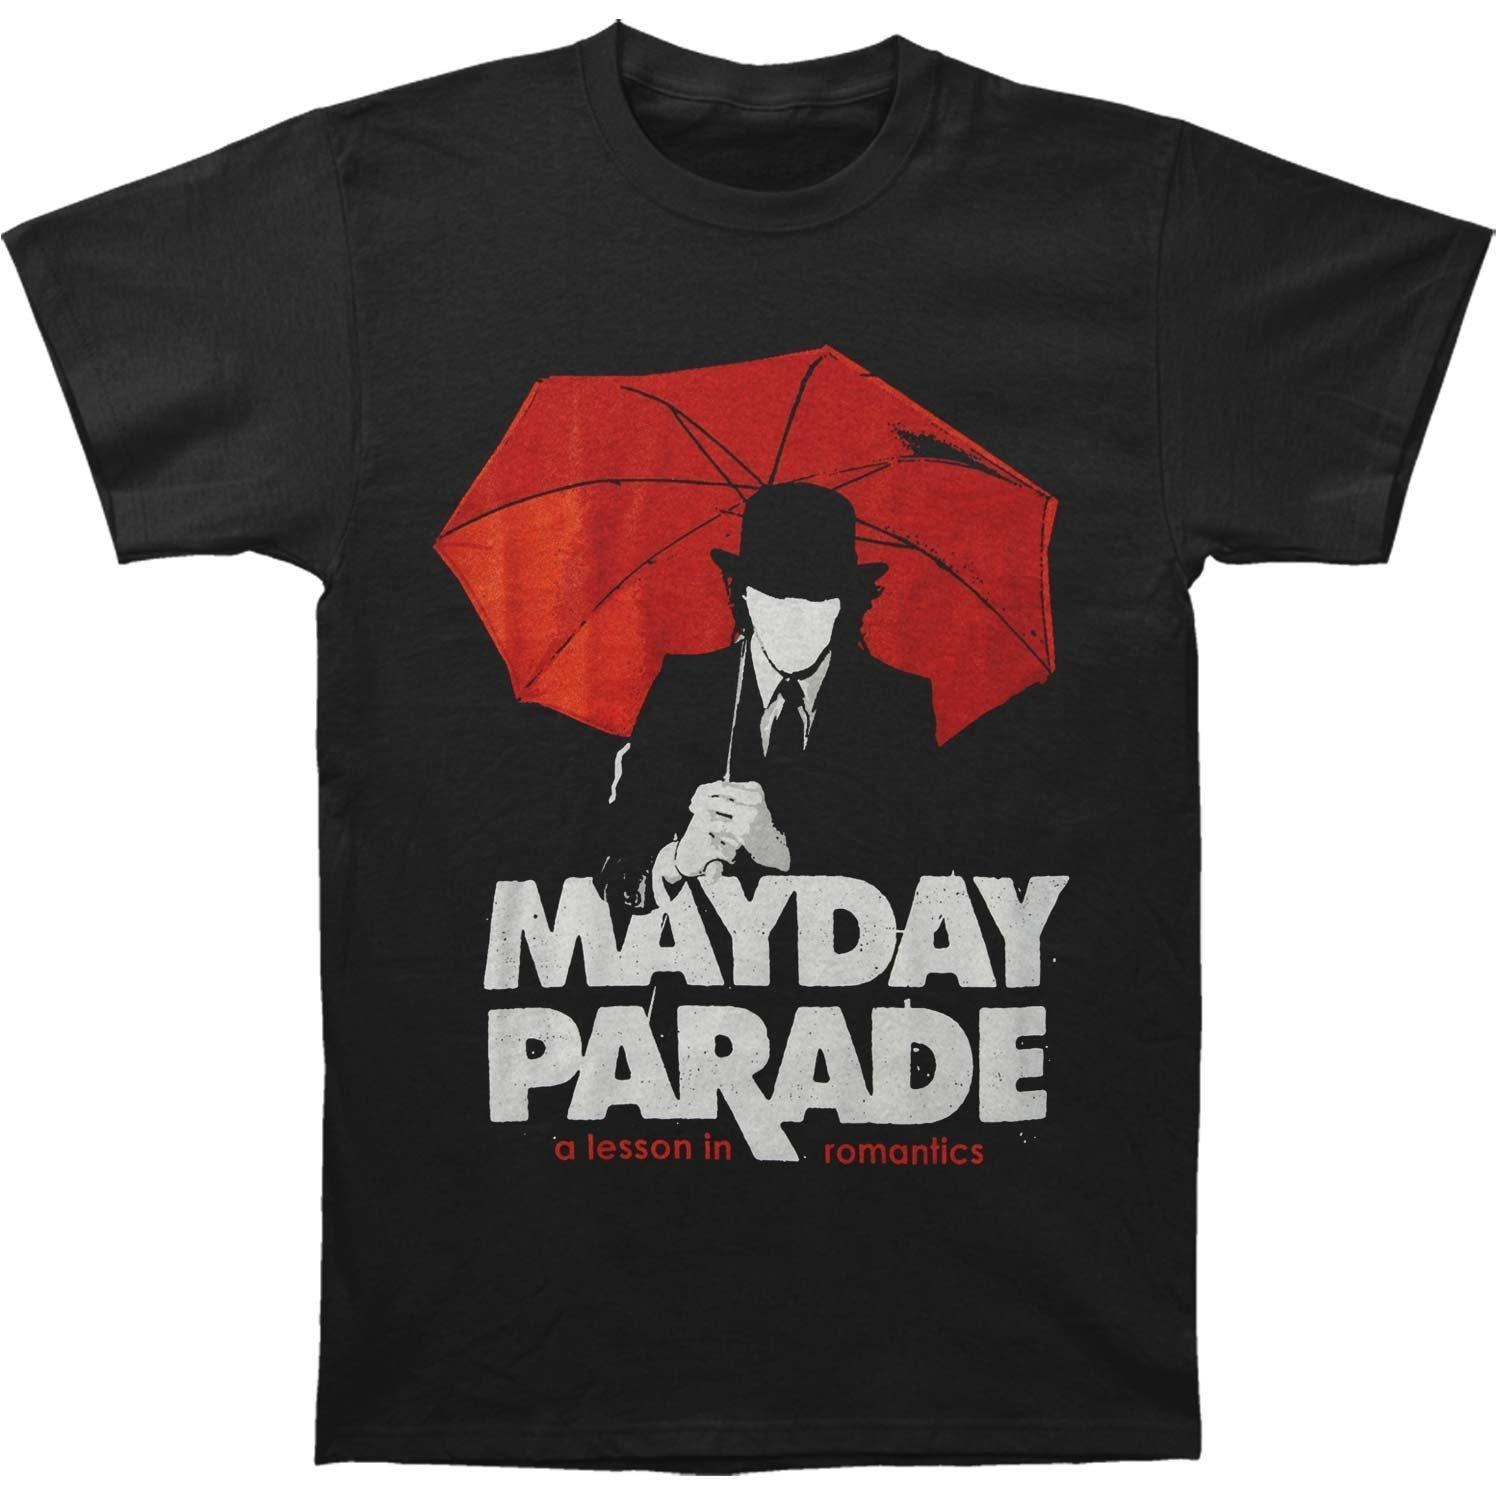 Mayday Parade MenS A Lesson In Romantics Umbrella Man T Shirt Black Silly Tee Shirts Site From Marcusdover 1101